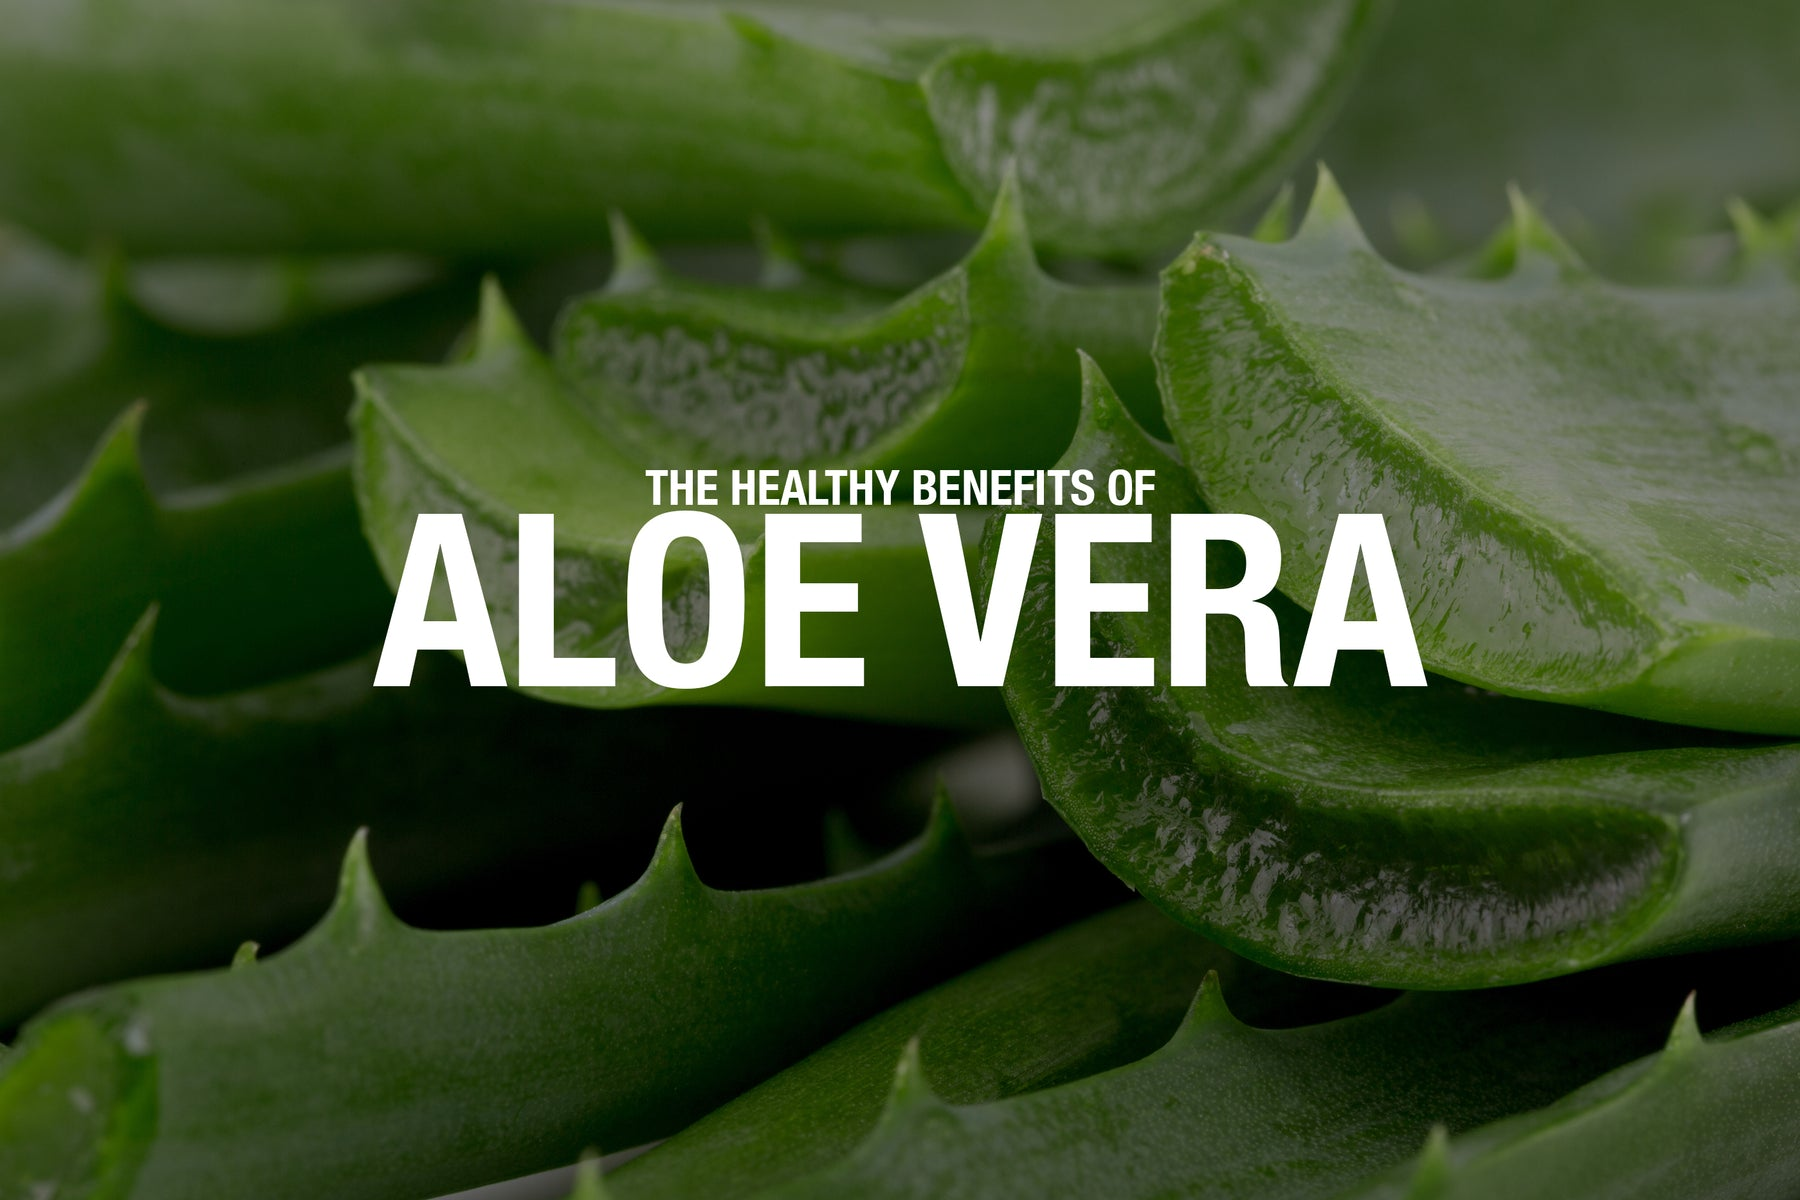 8 Healthy Benefits of Aloe Vera